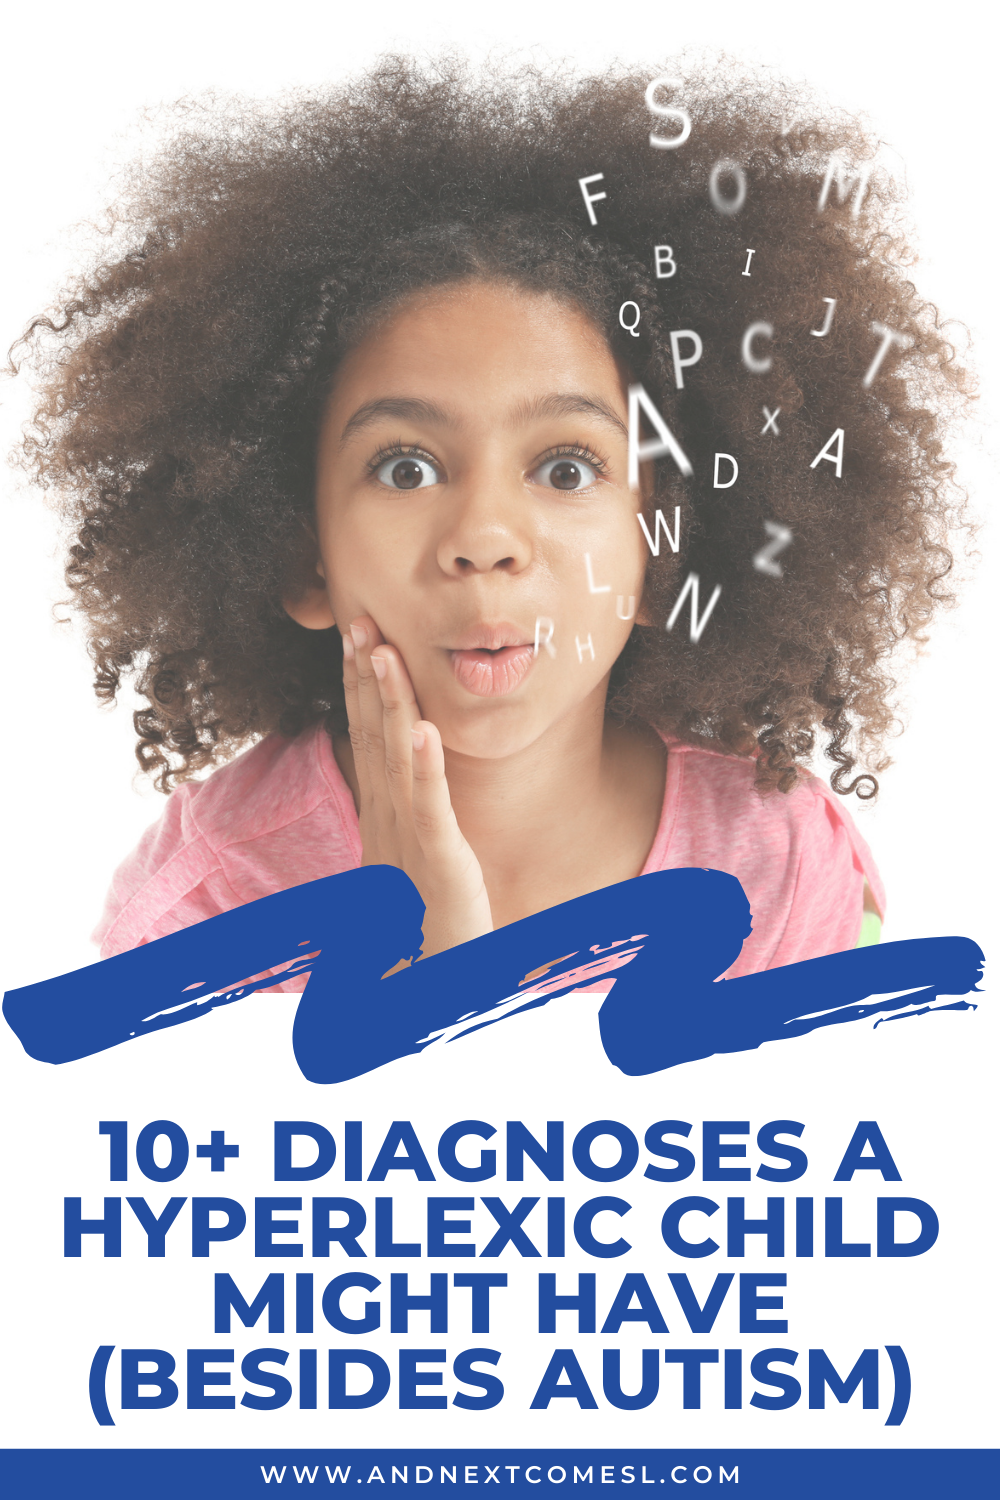 Is hyperlexia always diagnosed with autism? Here are 10+ diagnoses a hyperlexic child might have (besides autism)